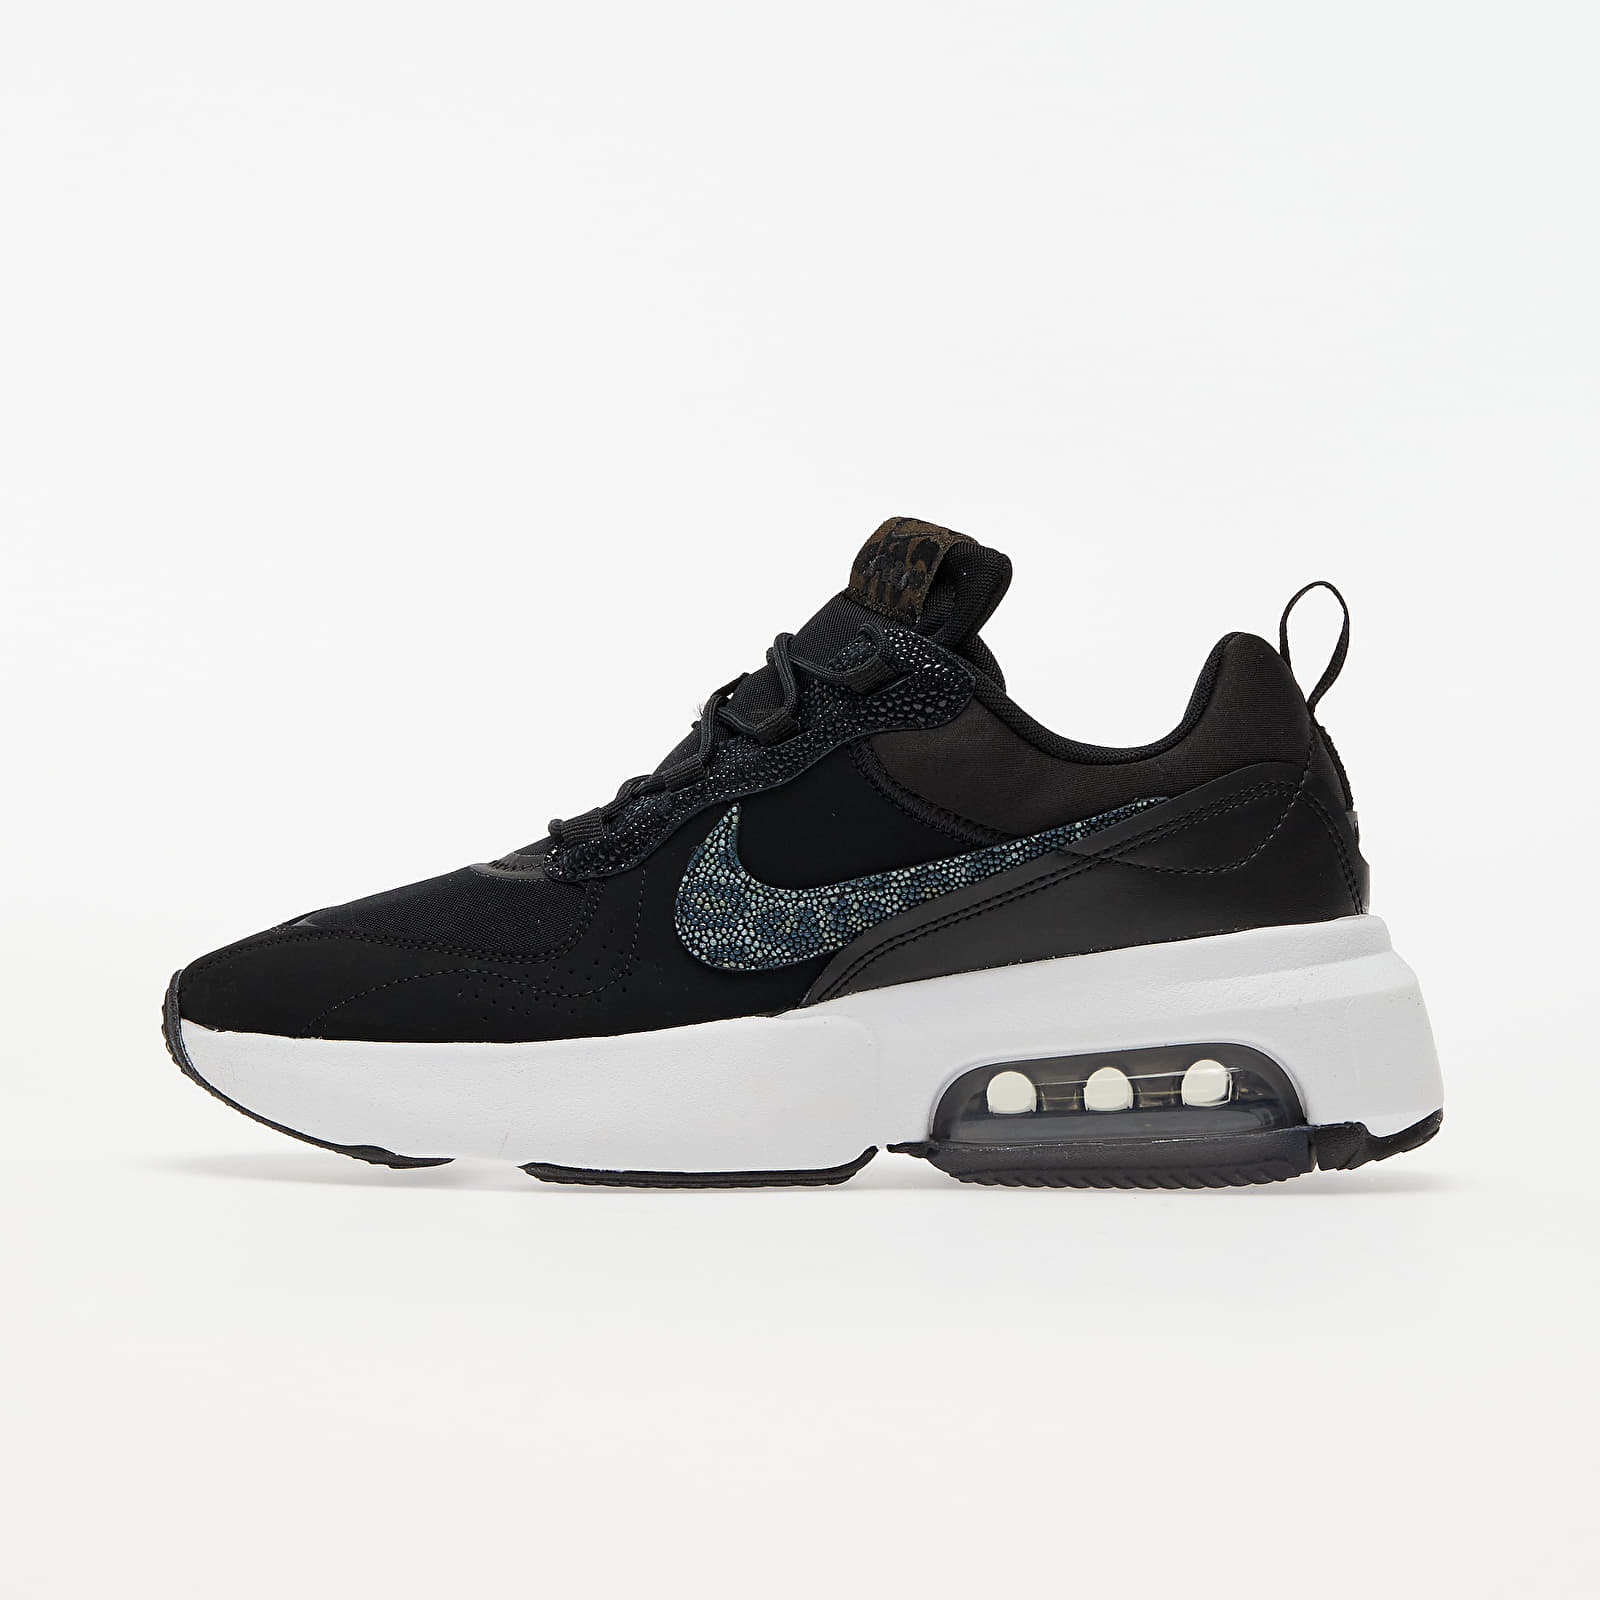 Nike W Air Max Verona SE Black/ Black-Anthracite-Off Noir EUR 40.5